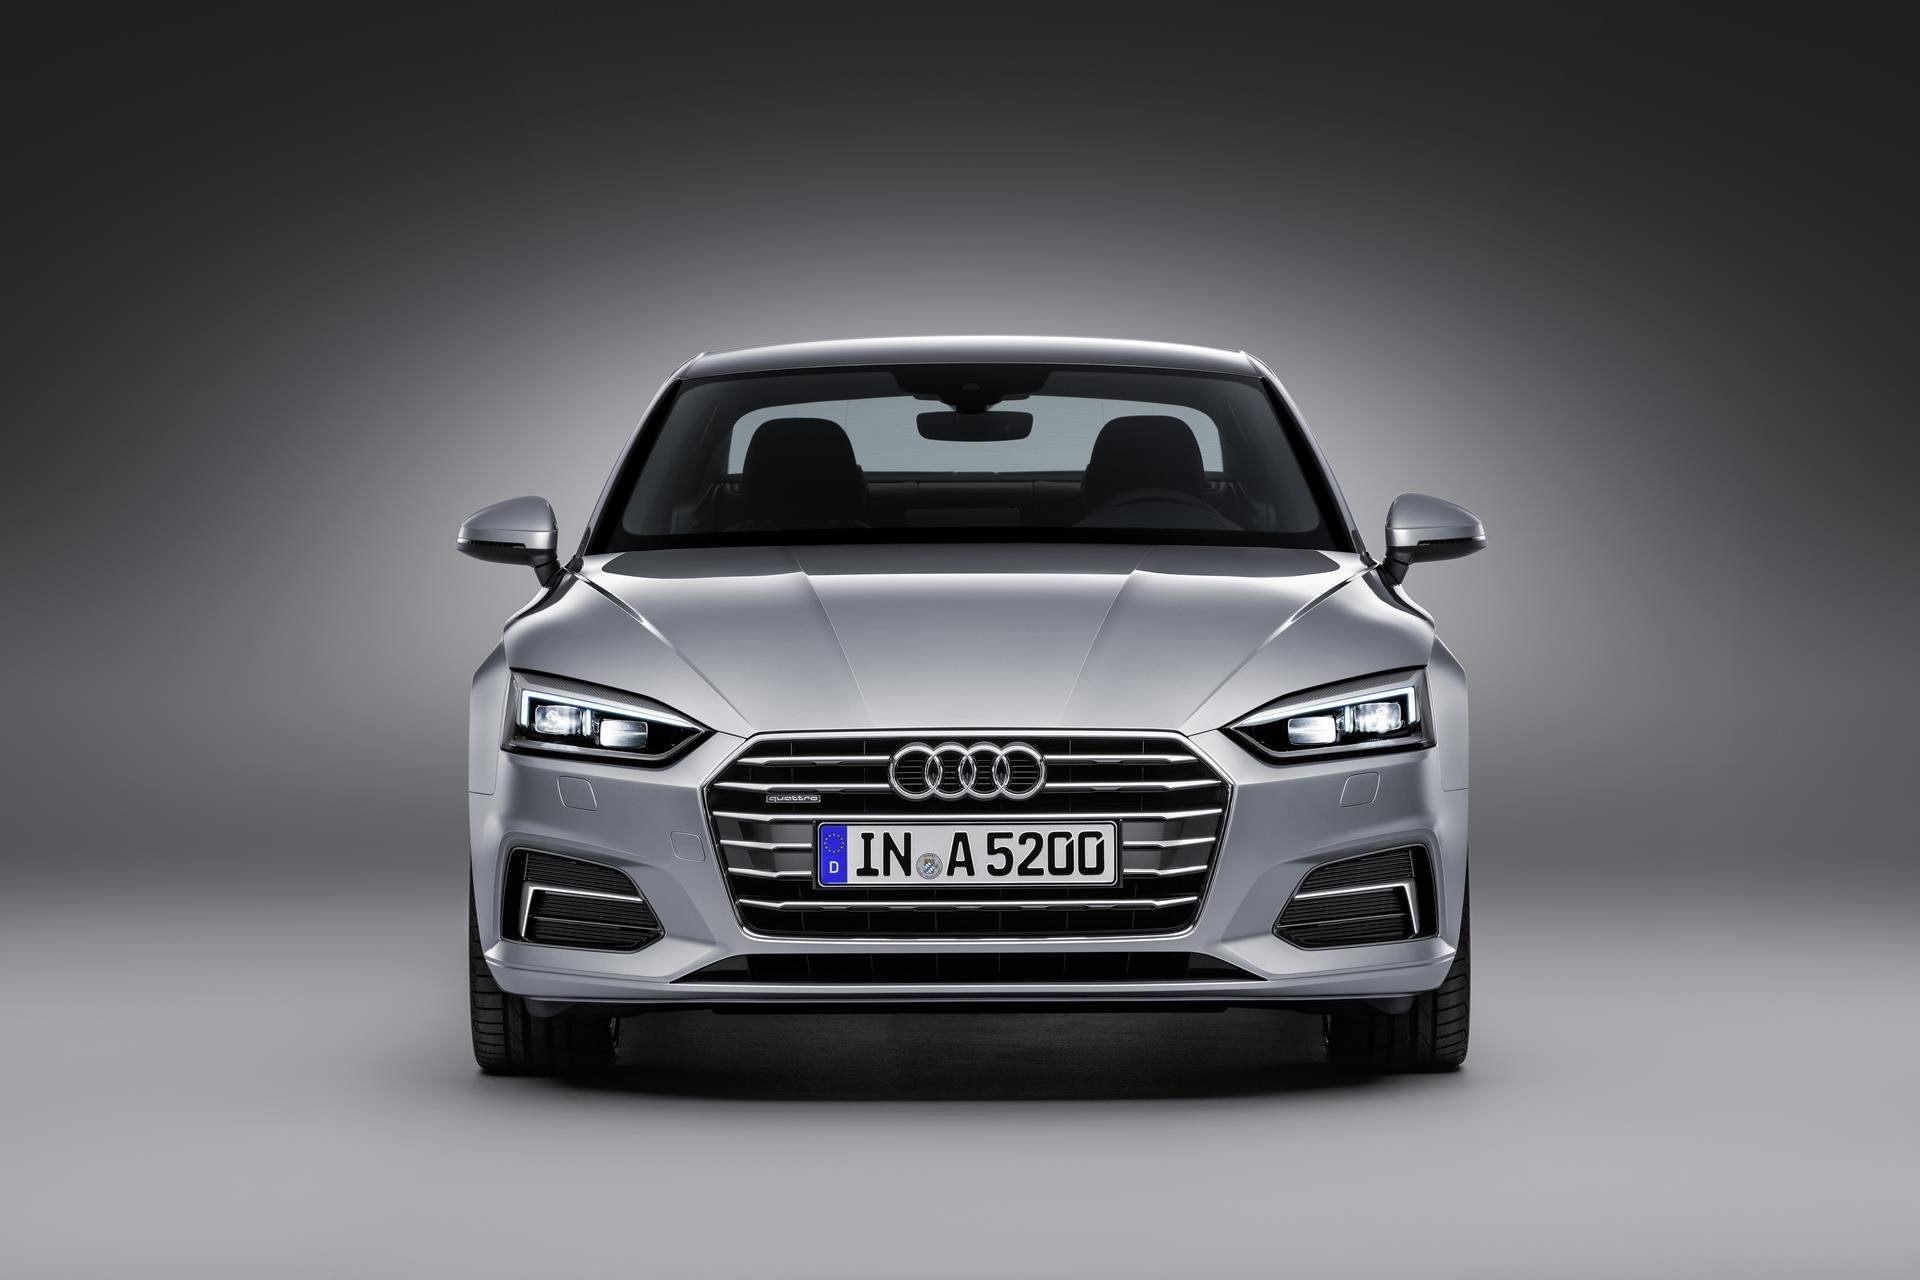 New 2019 Audi A5 2.0T quattro Premium Coupe 2.0T quattro Premium for sale $44,200 at M and V Leasing in Brooklyn NY 11223 1